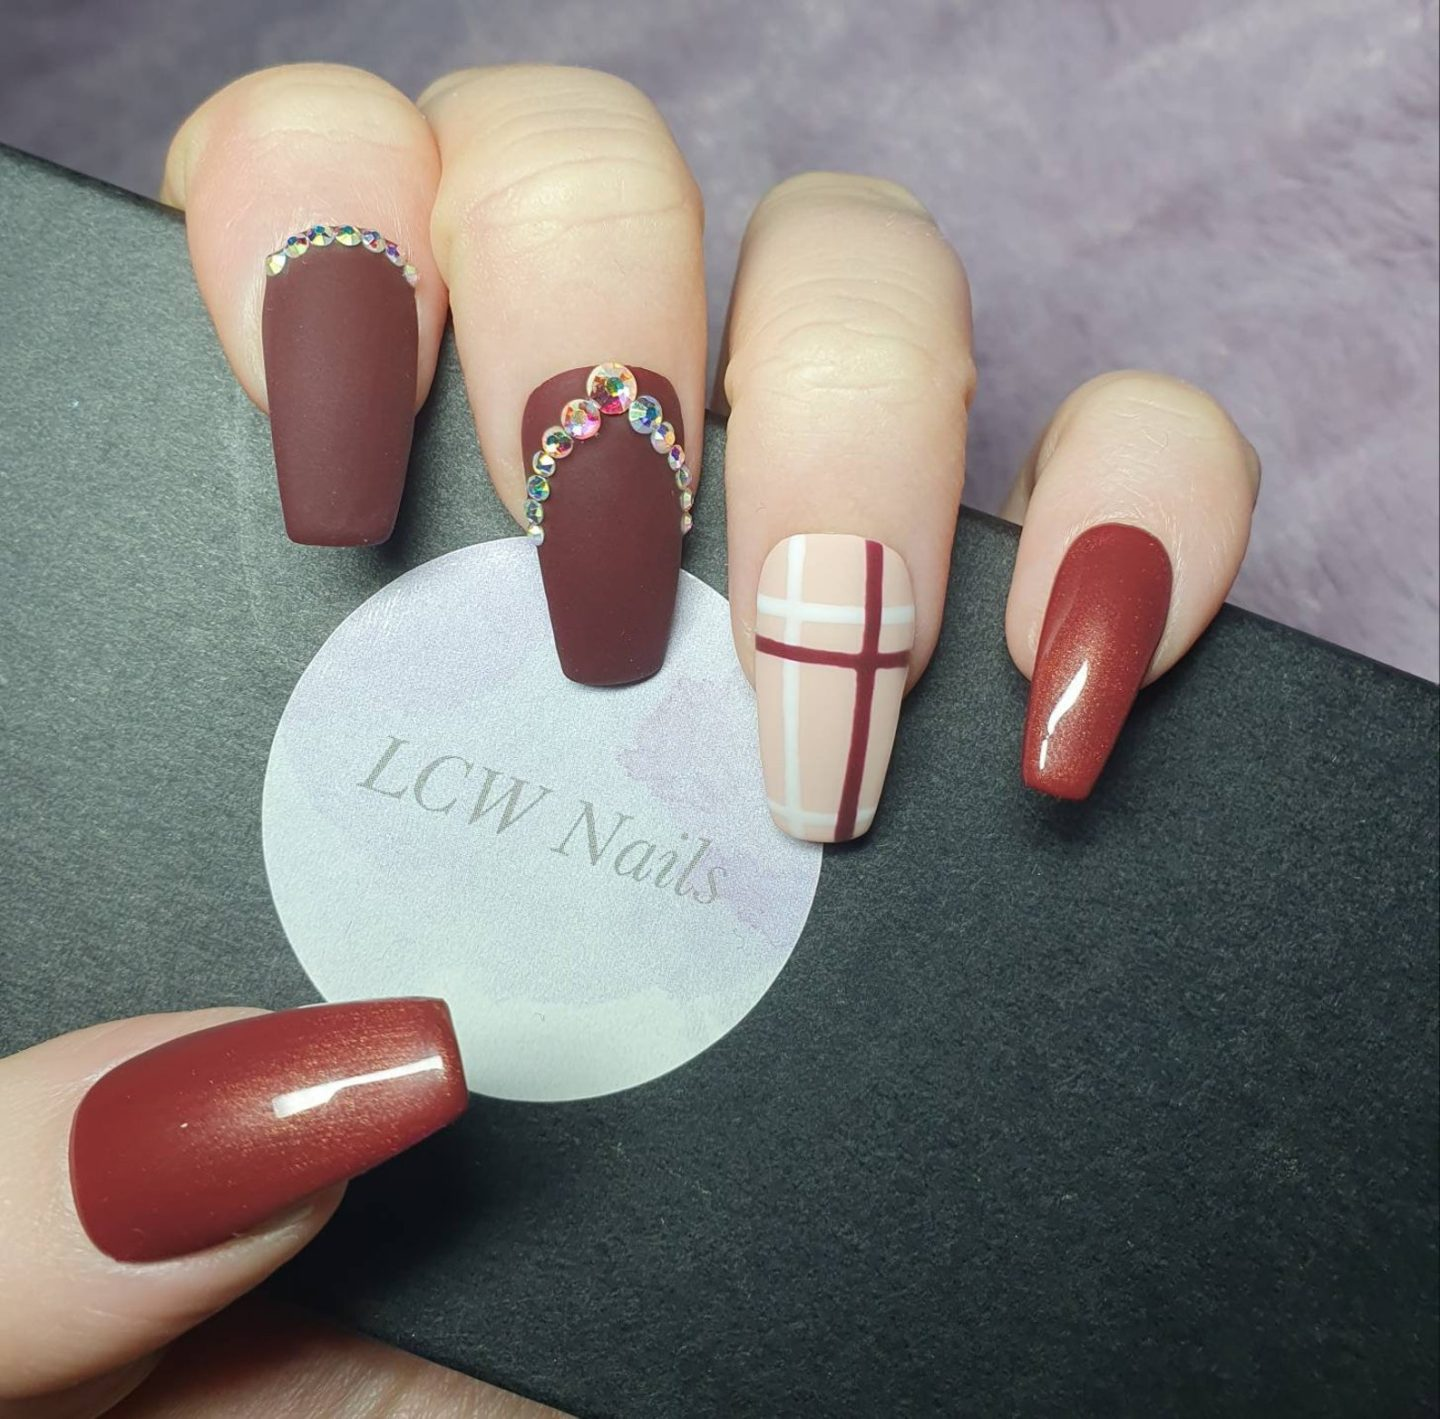 Matte burgundy Burberry inspired plaid nails with rhinestones